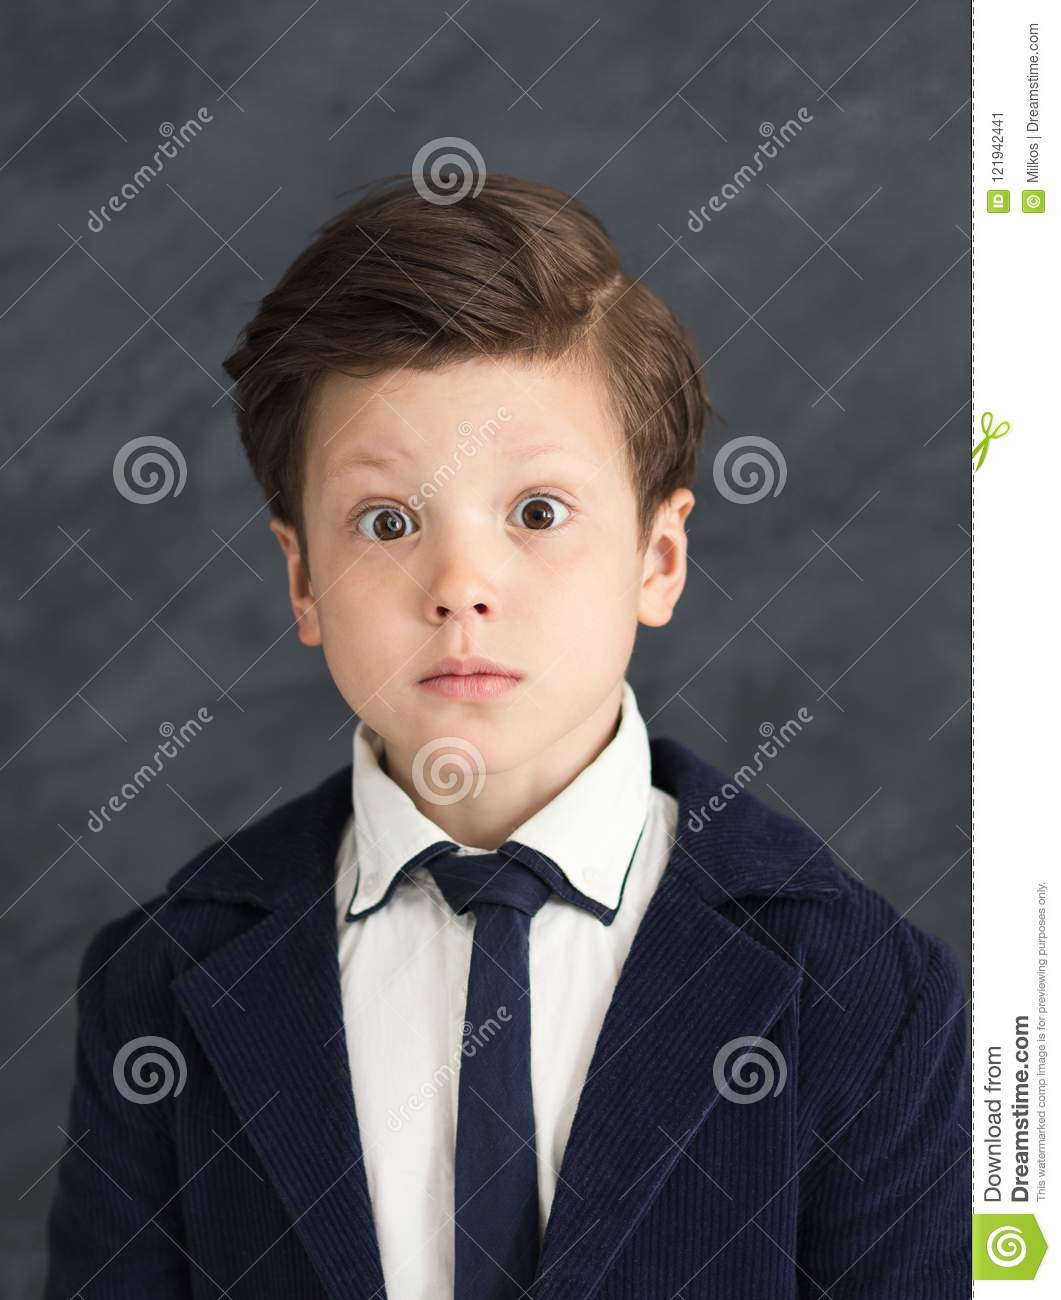 Little boy in business suit with shocked expression